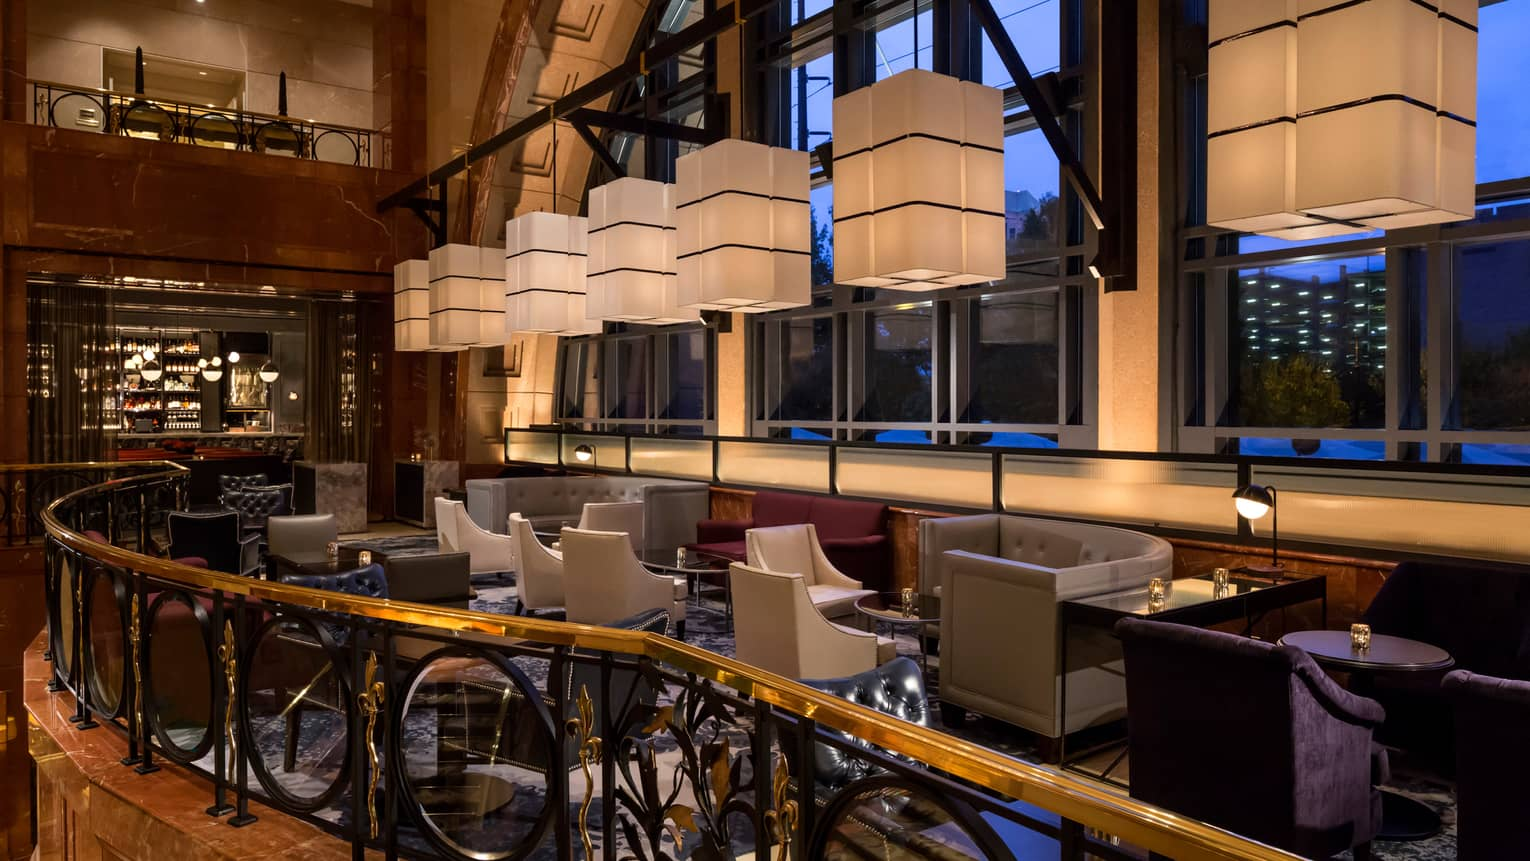 White rectangular lanterns hang above Bar Margot lounge area in front of arched window